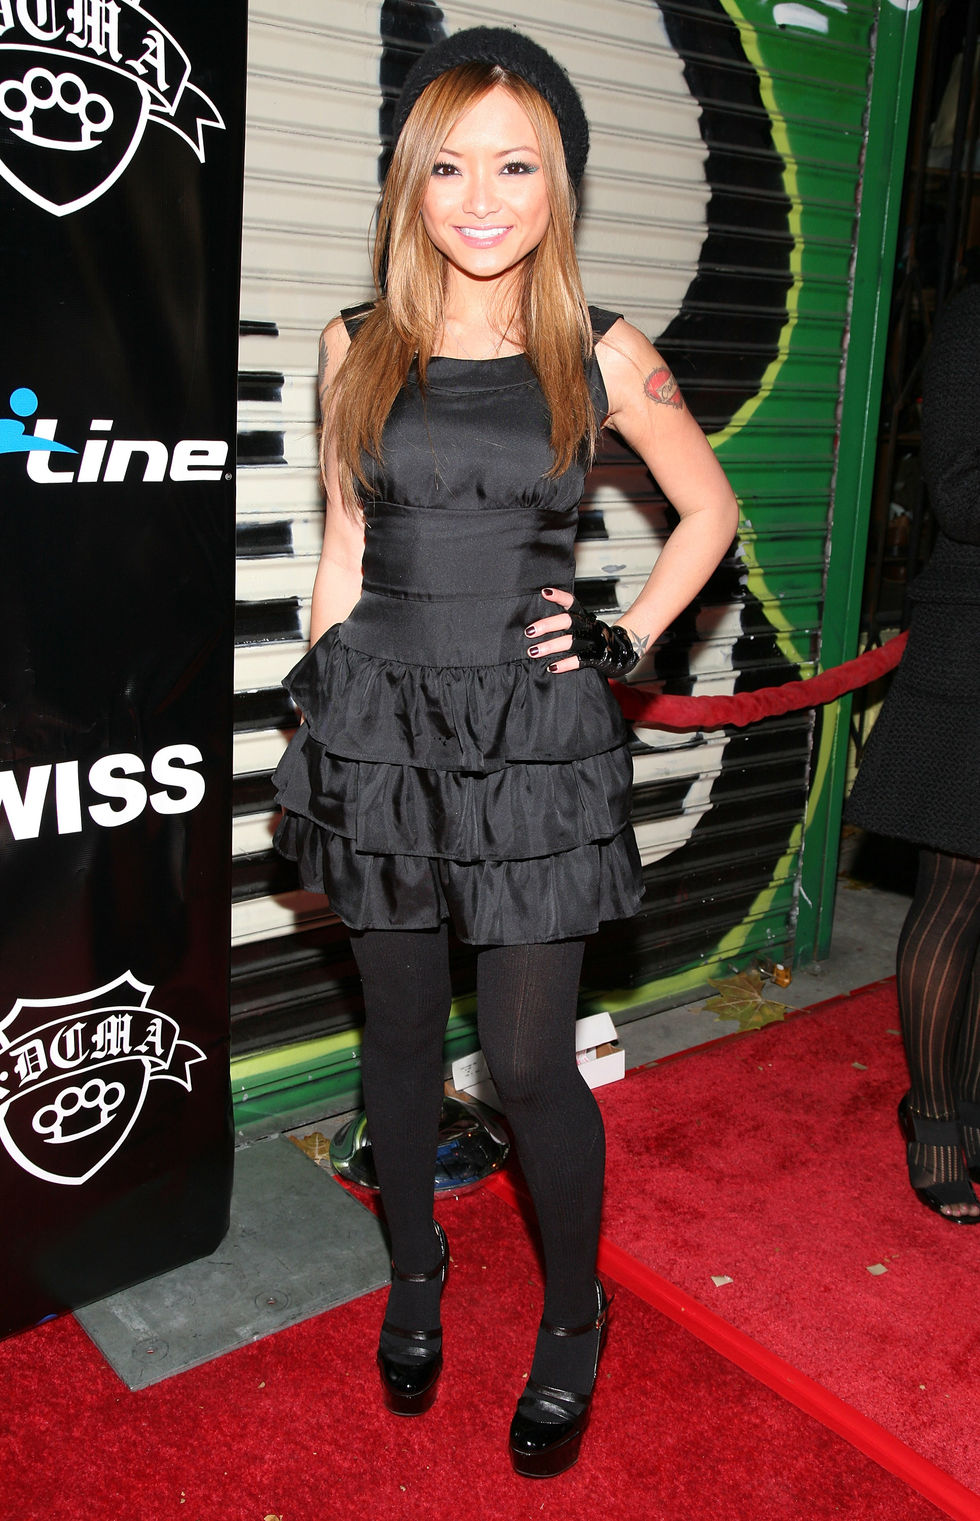 tila-tequila-official-footwear-launch-for-k-dcma-01